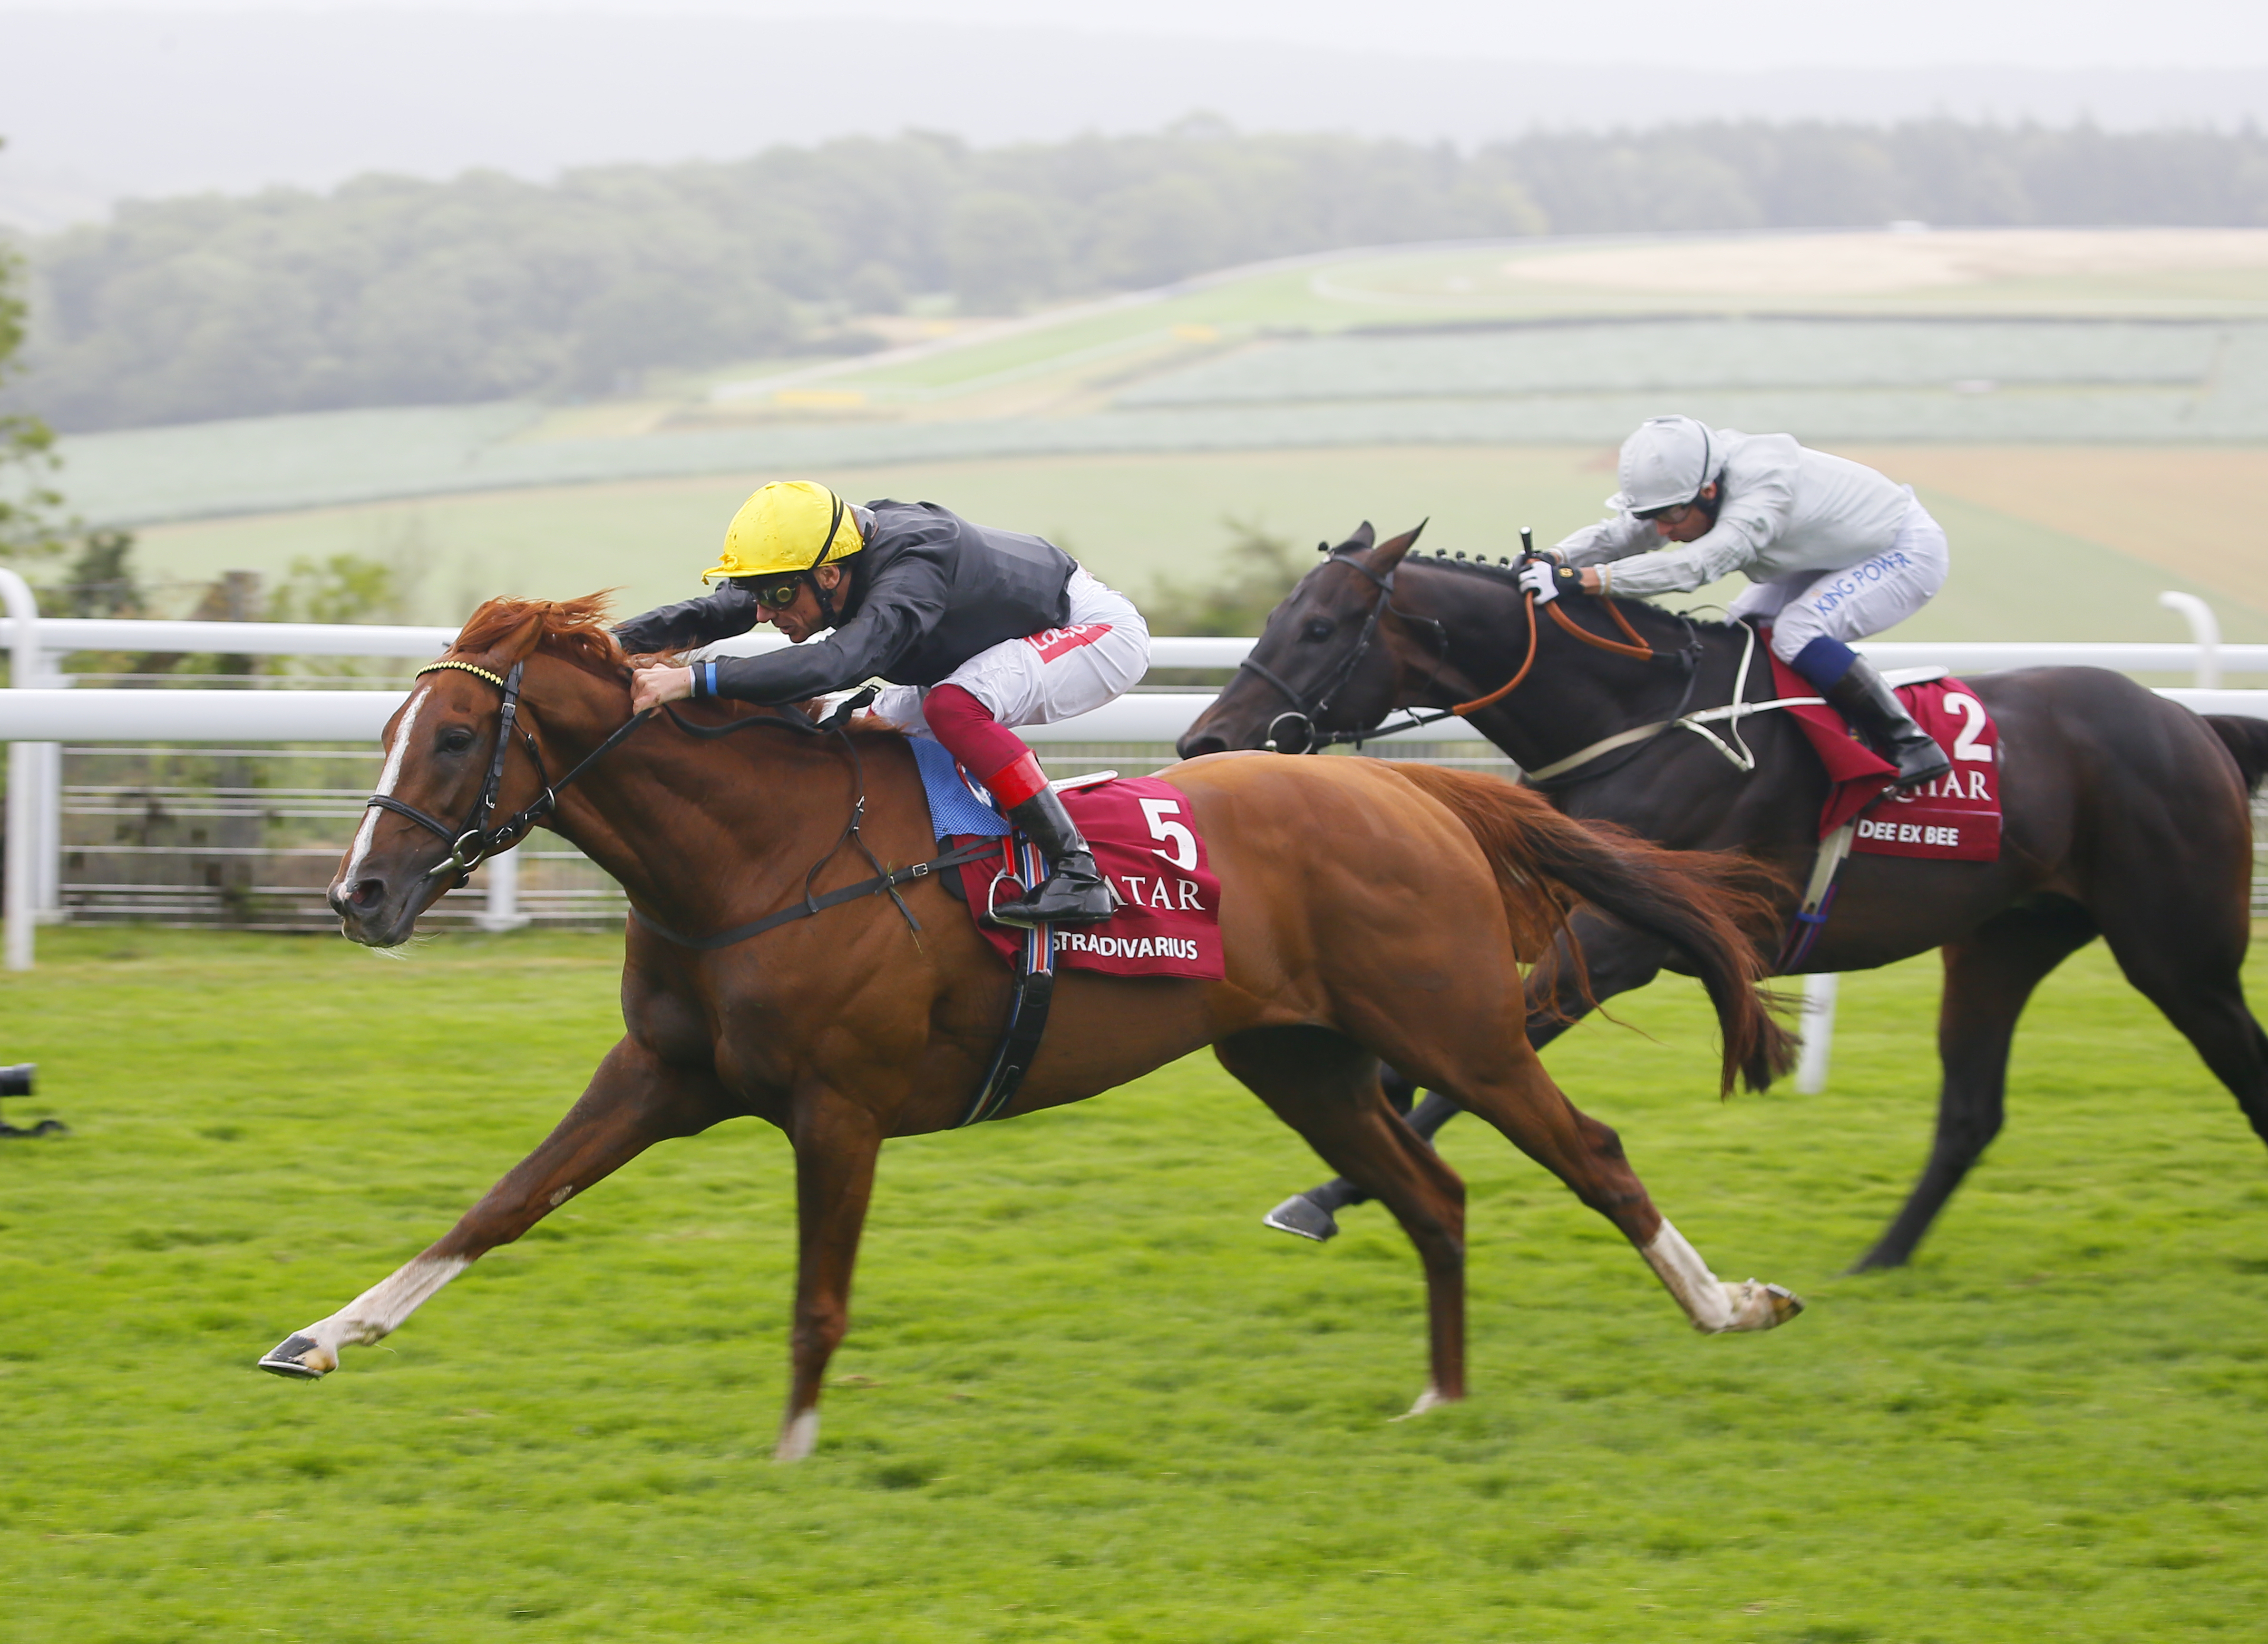 Sectional timing data from RMG's racecourses